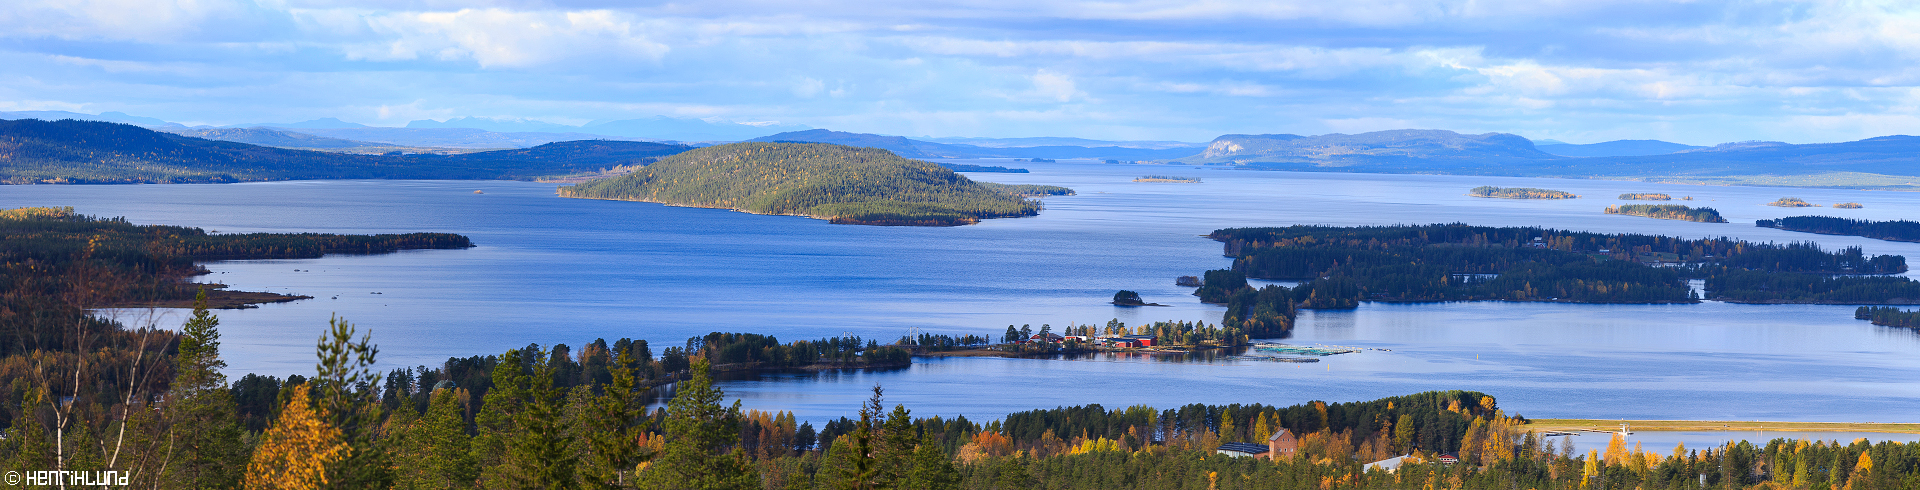 Panoramic view from 'Utikten' in Storuman, Sweden. October 2015.